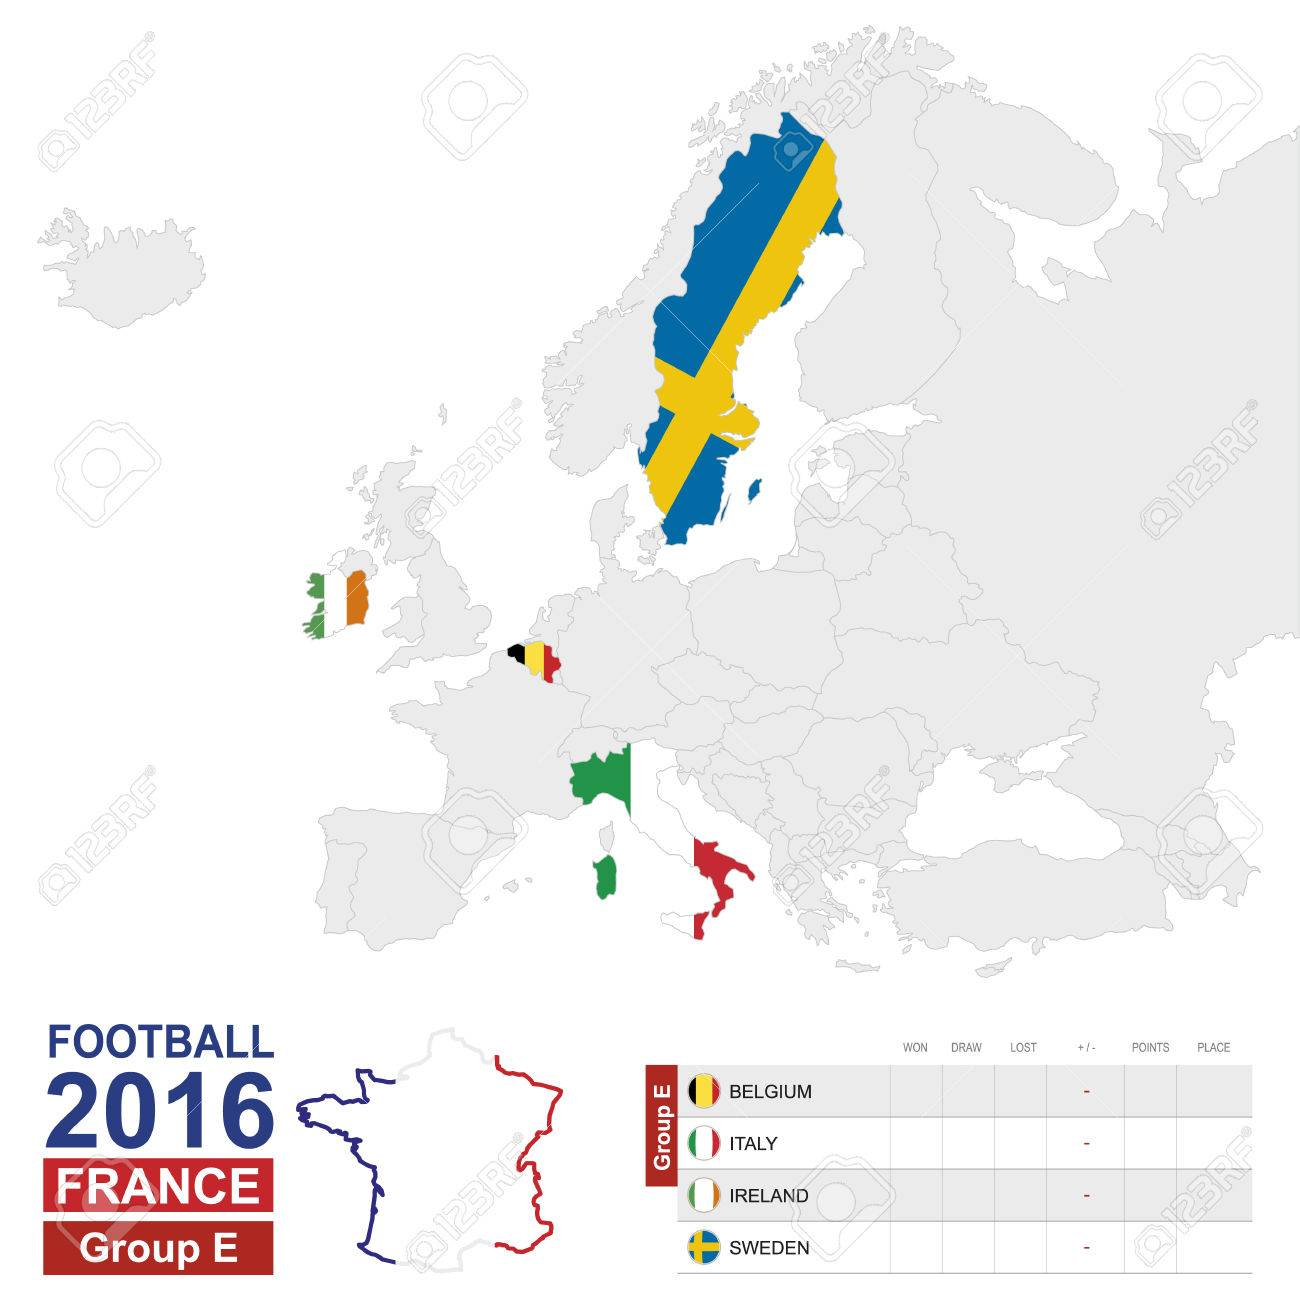 Football Group E Table Group E Highlighted On Europe Map - Sweden map of europe